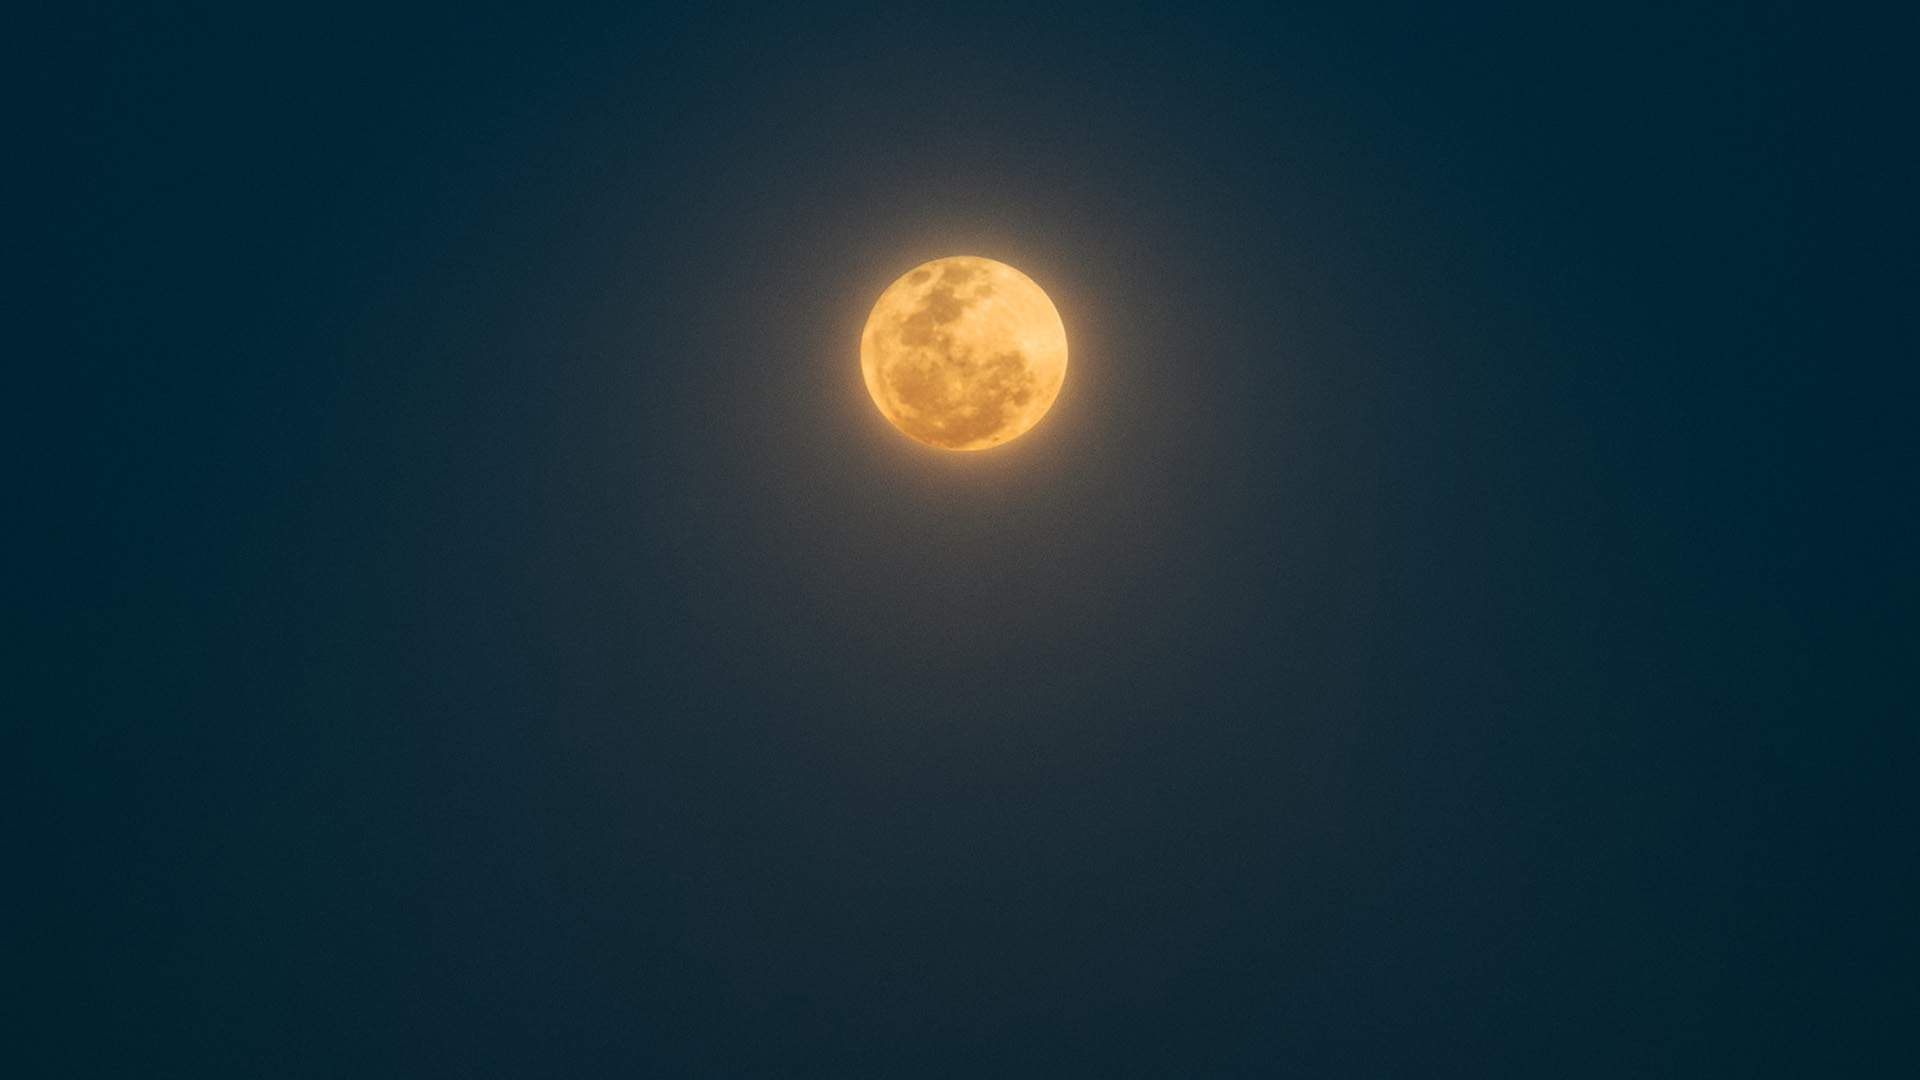 A 'Strawberry' Full Moon Will Be Visible in Australia's Skies This Week